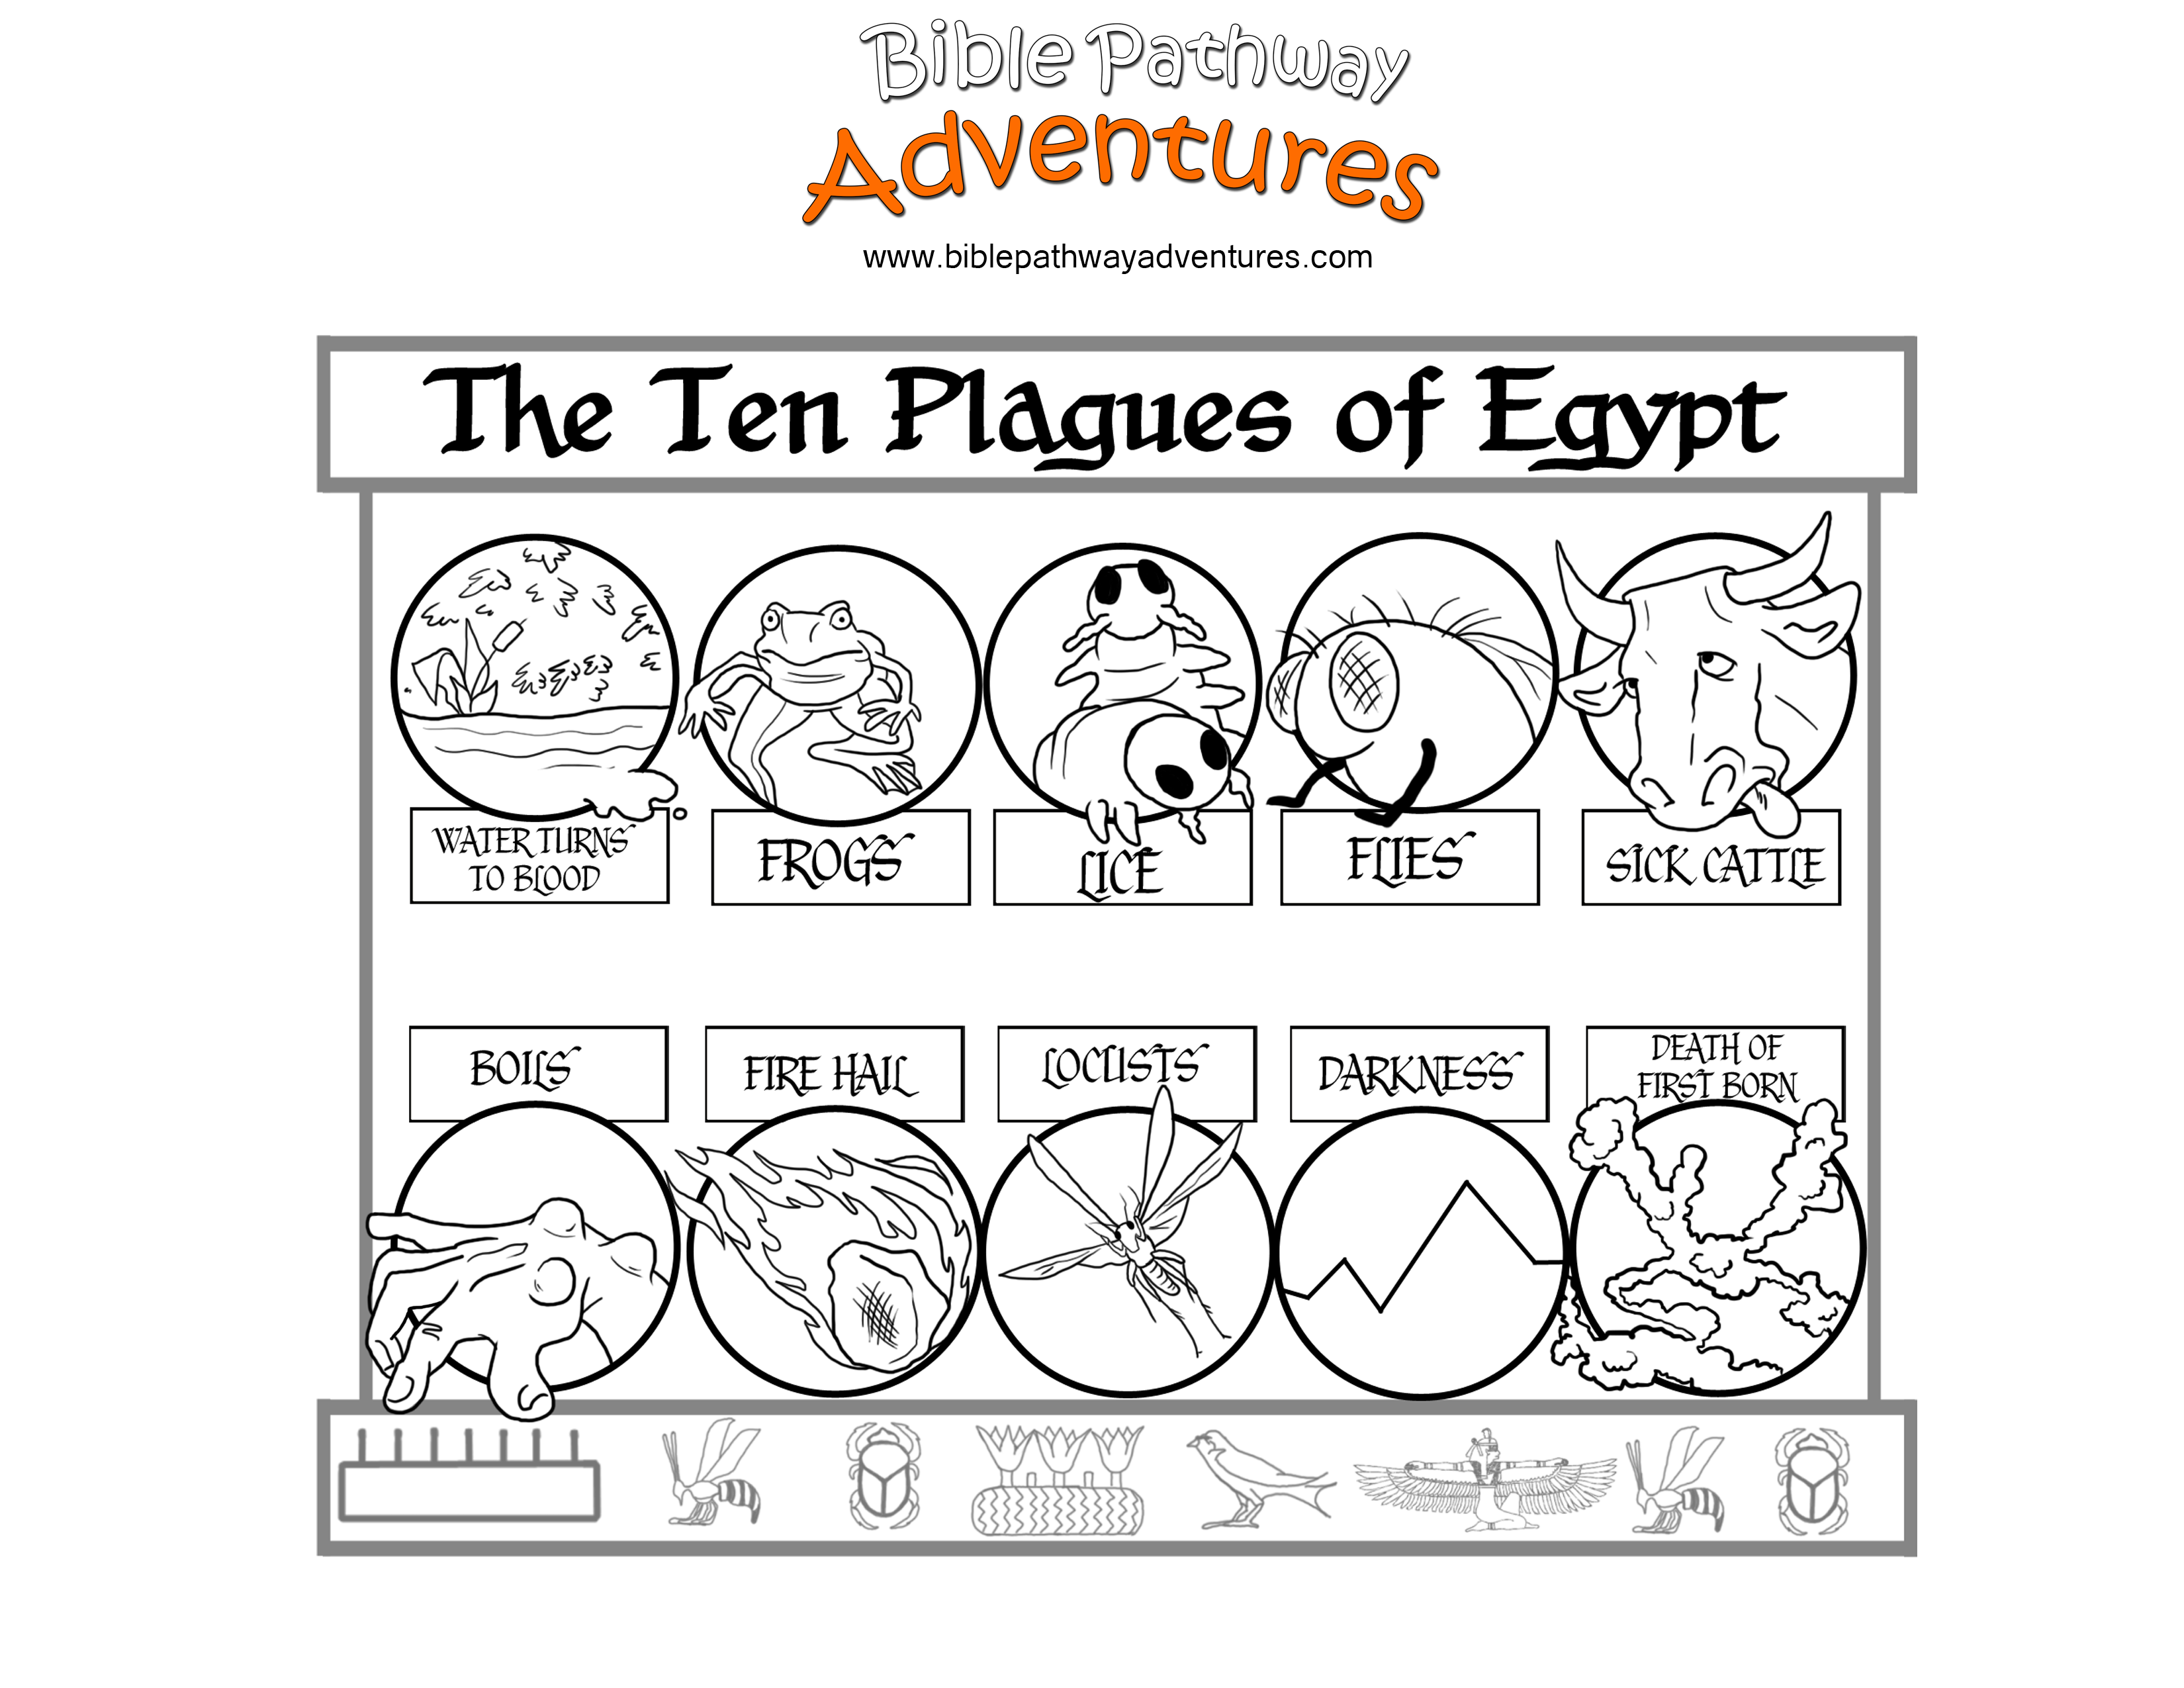 plagues of egypt word search click through to the website for the